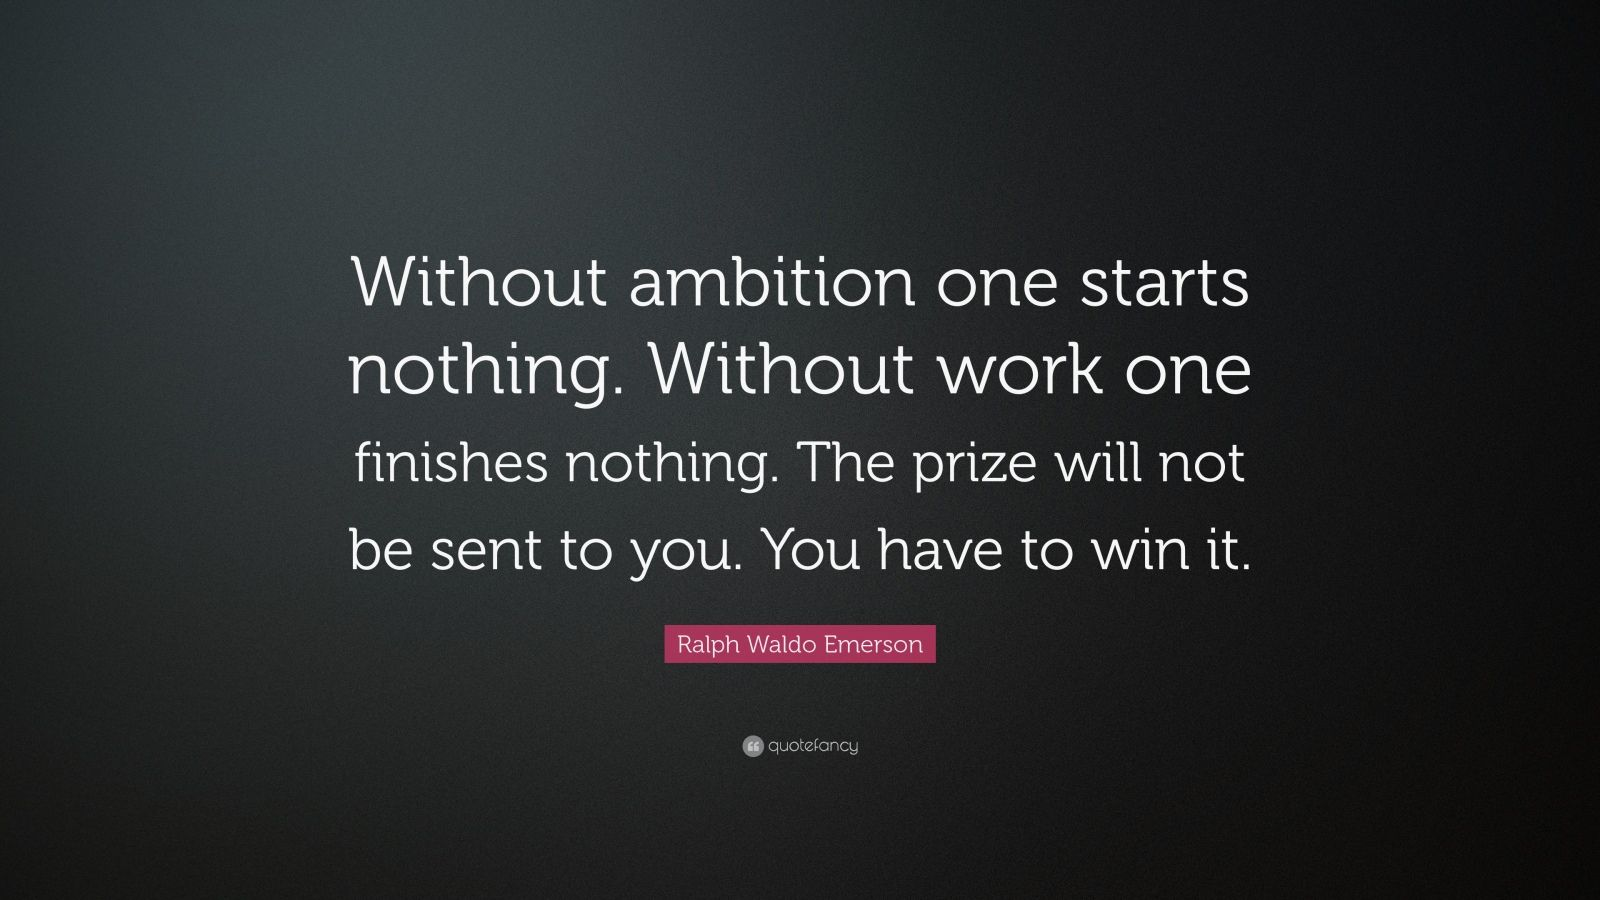 Conor Mcgregor Quote Wallpaper Ralph Waldo Emerson Quote Without Ambition One Starts